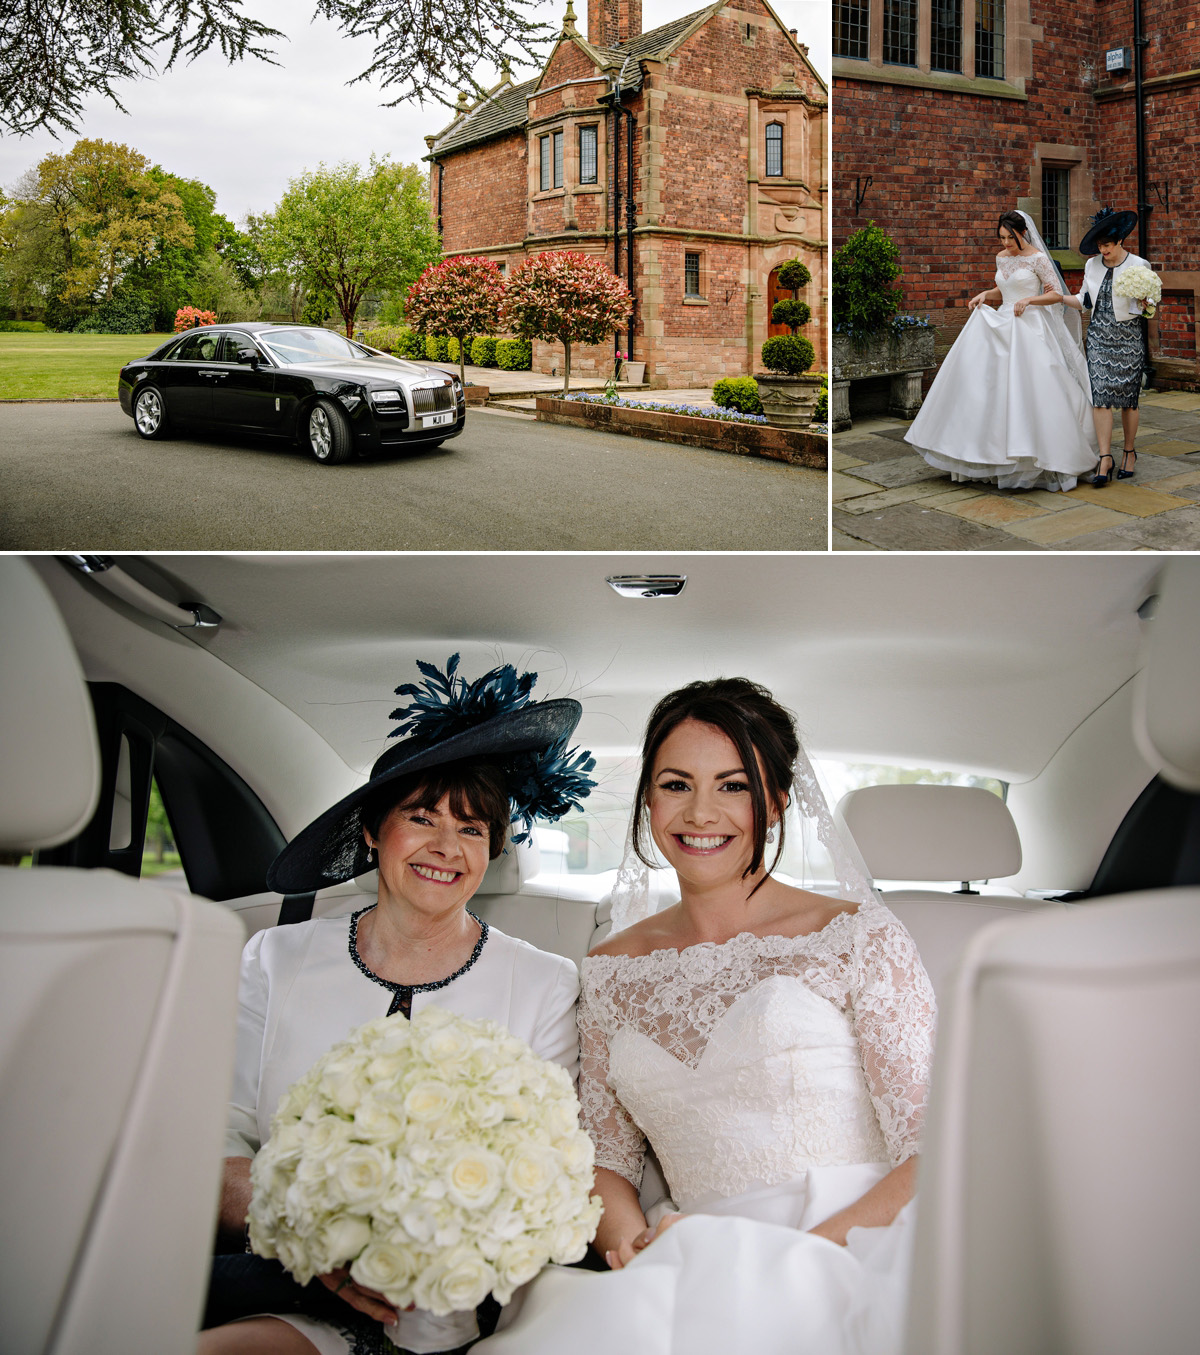 Bride with her mum leave for the wedding ceremony in luxury Rolls Royce